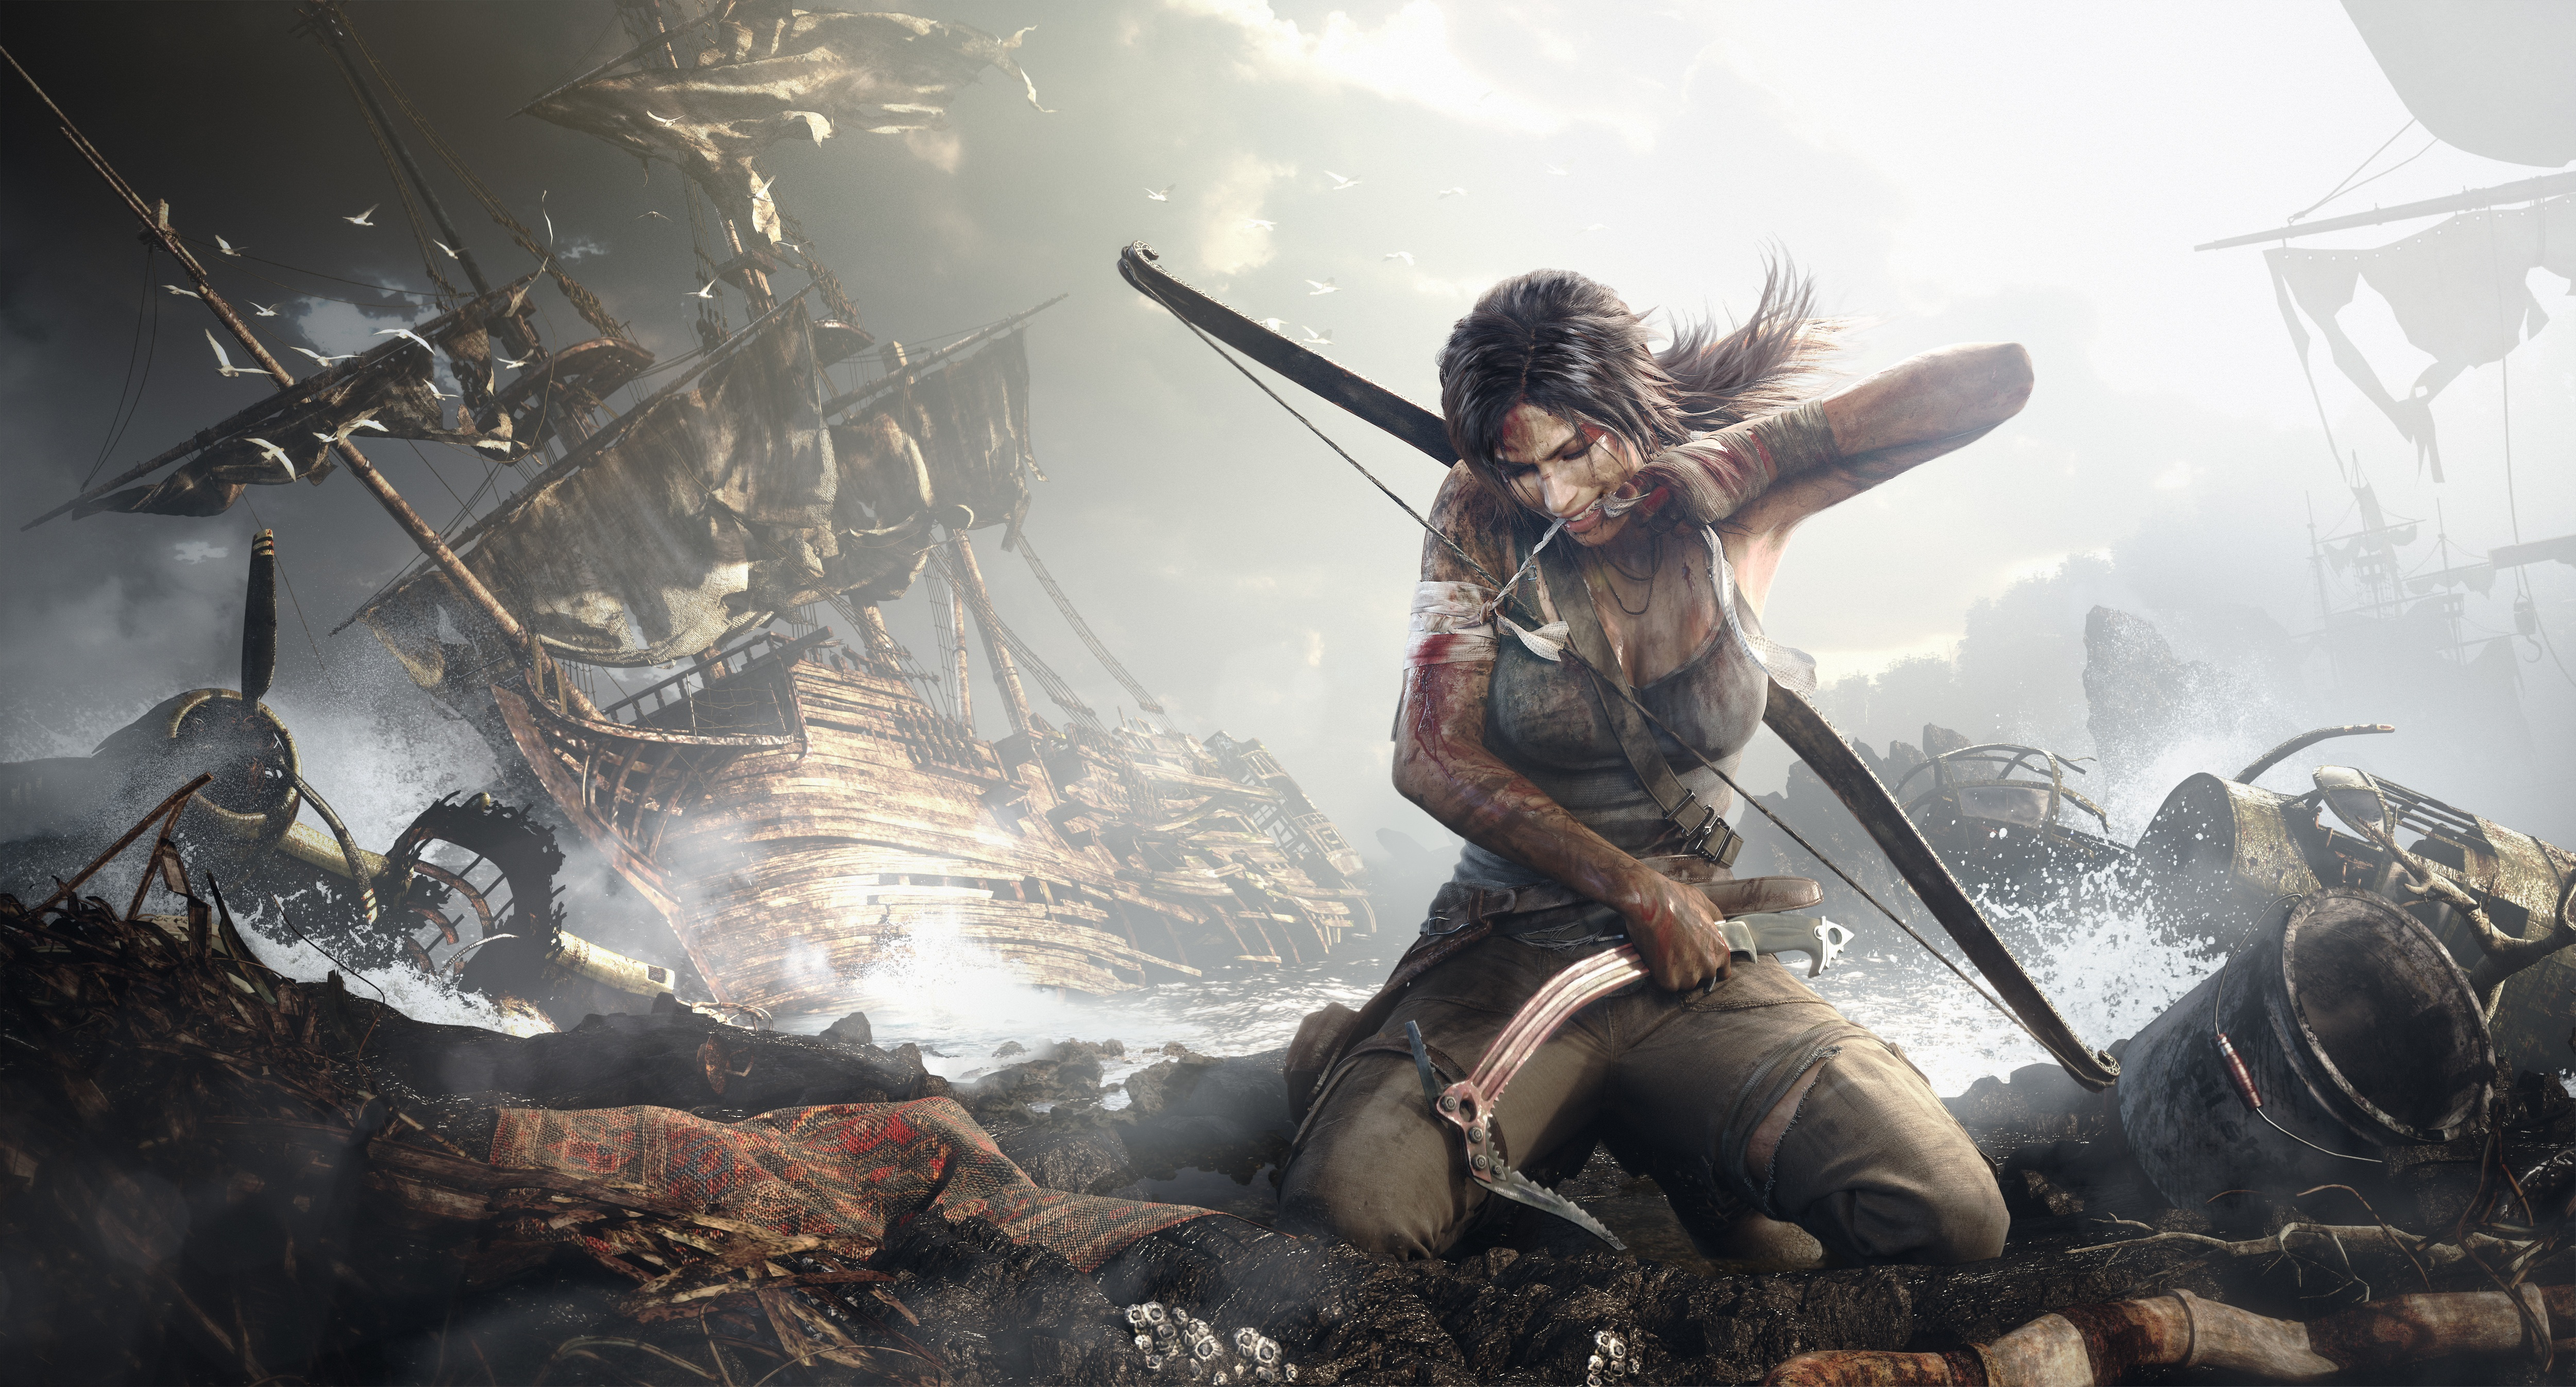 Tomb Raider 2013 Lara Croft Artwork